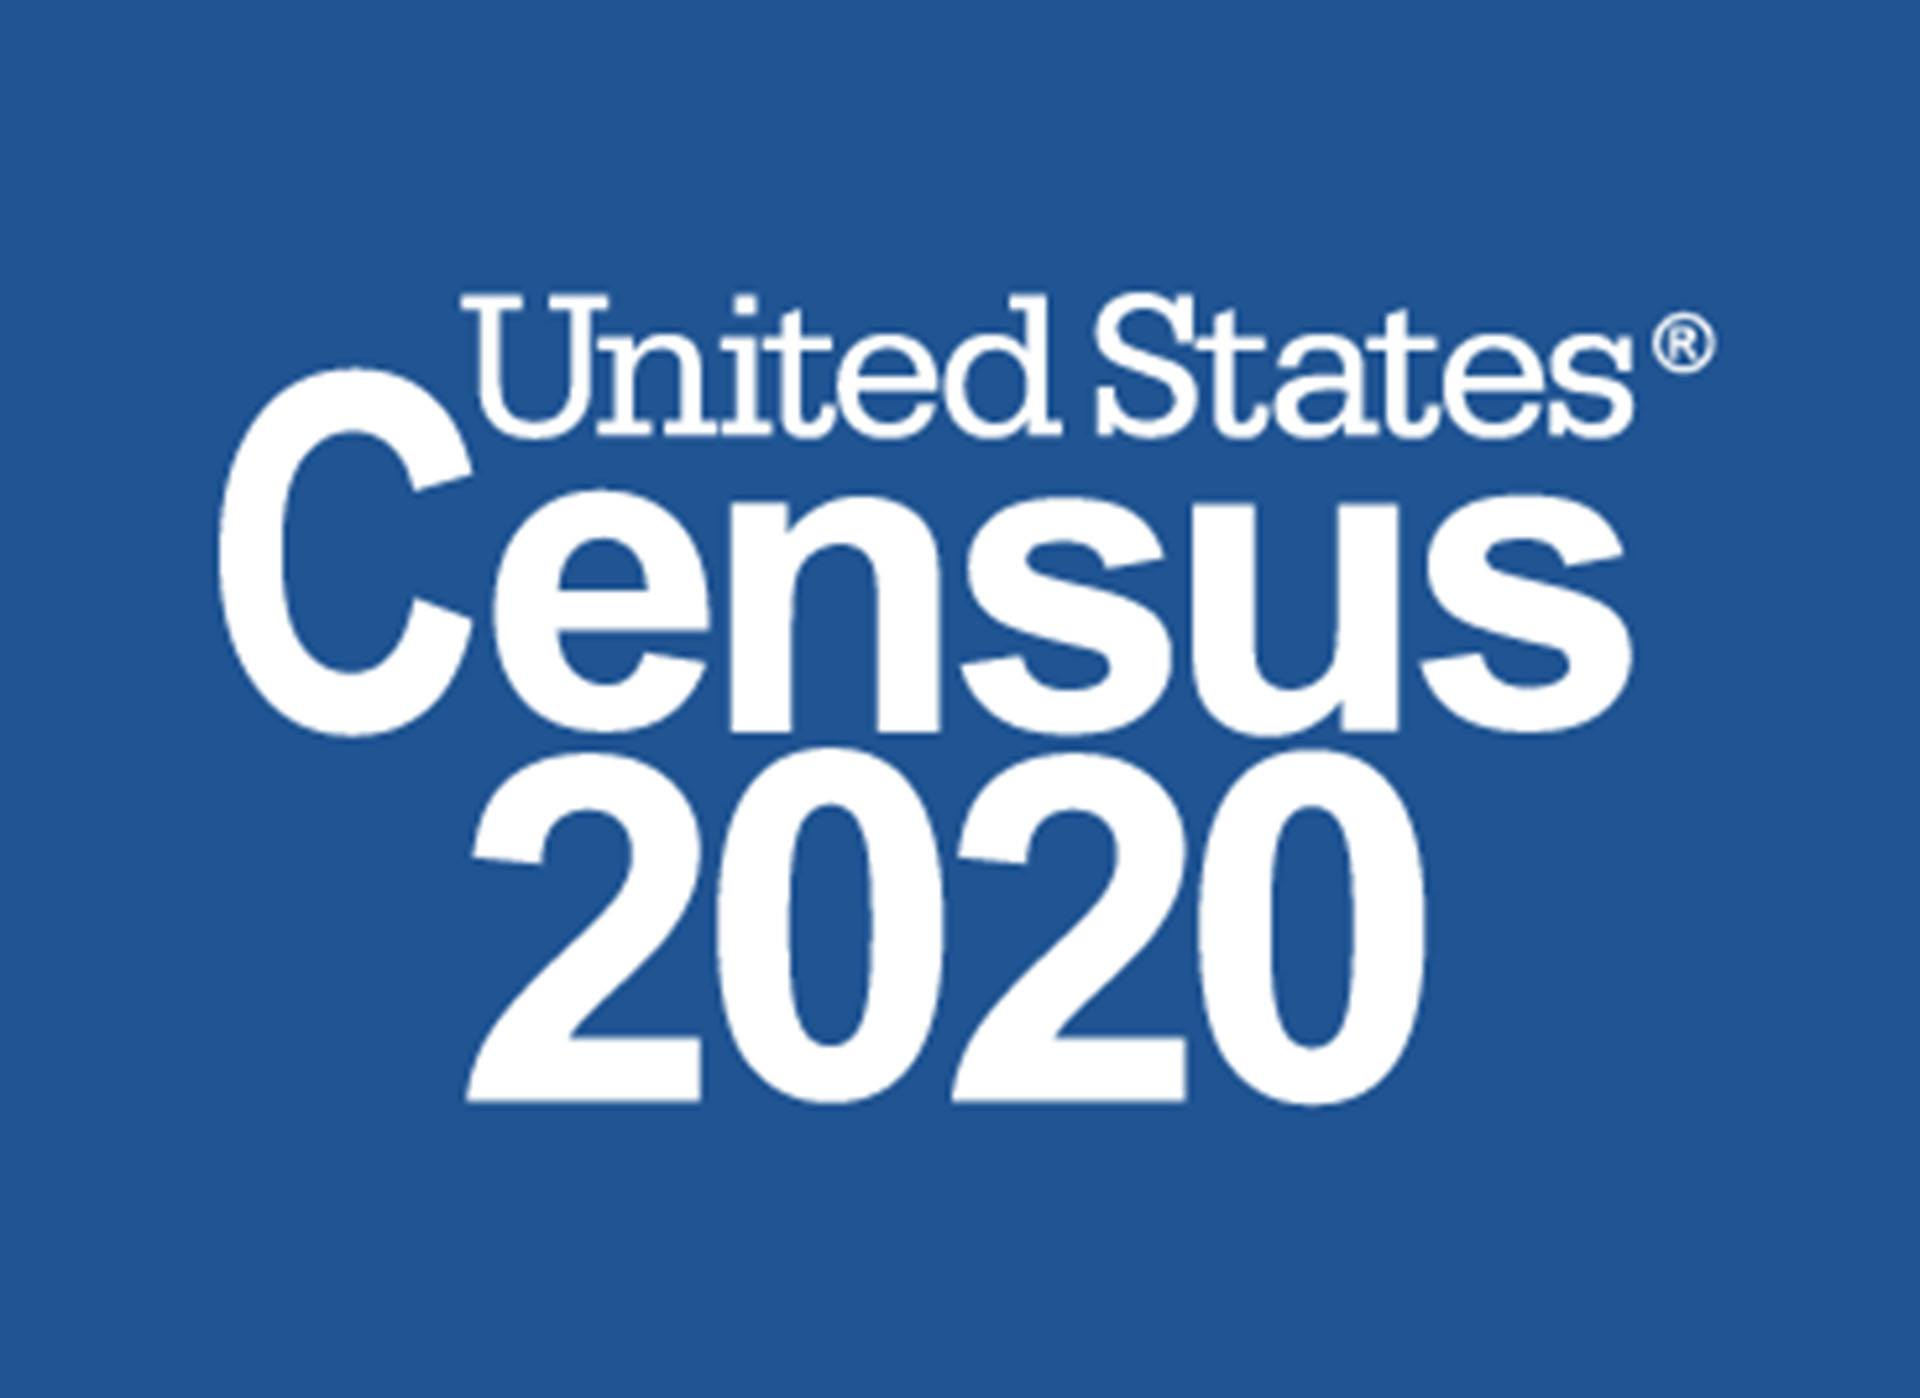 Officials extend 2020 census